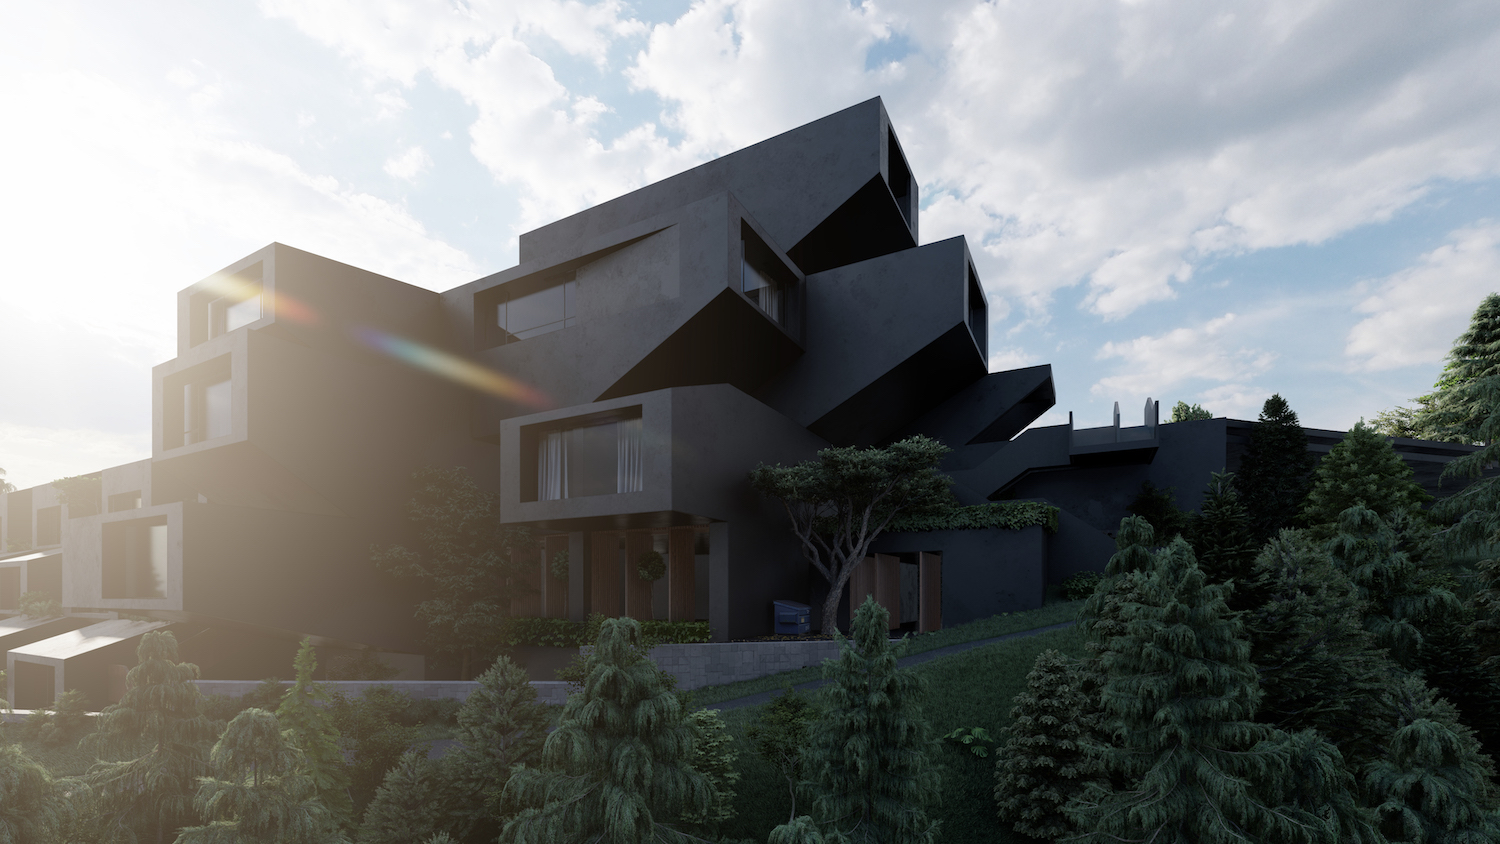 a ski resort with black apartment facade located in northern Tehran